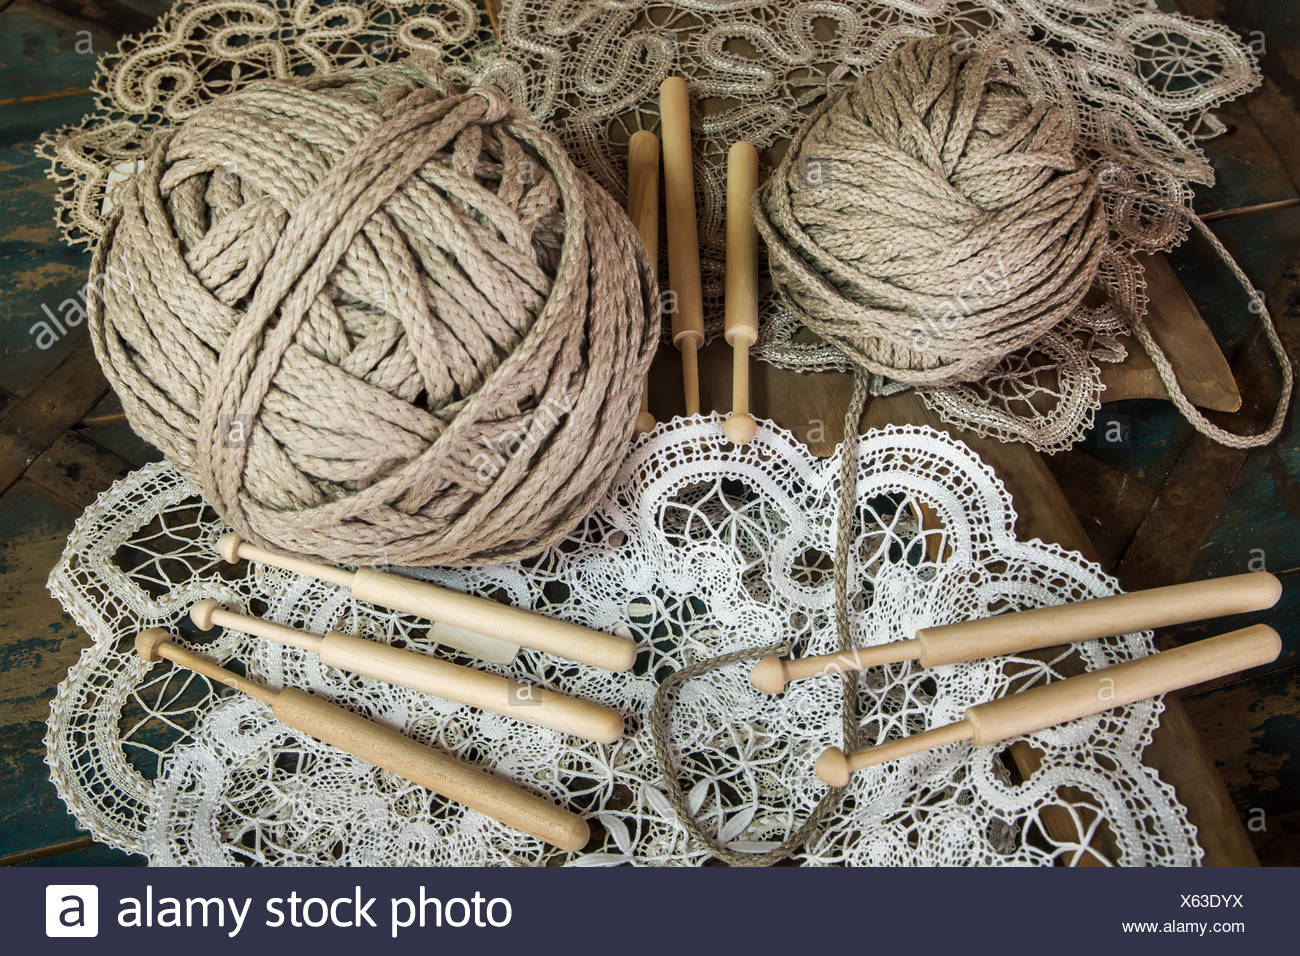 Lace with a ball of yarn - Stock Image